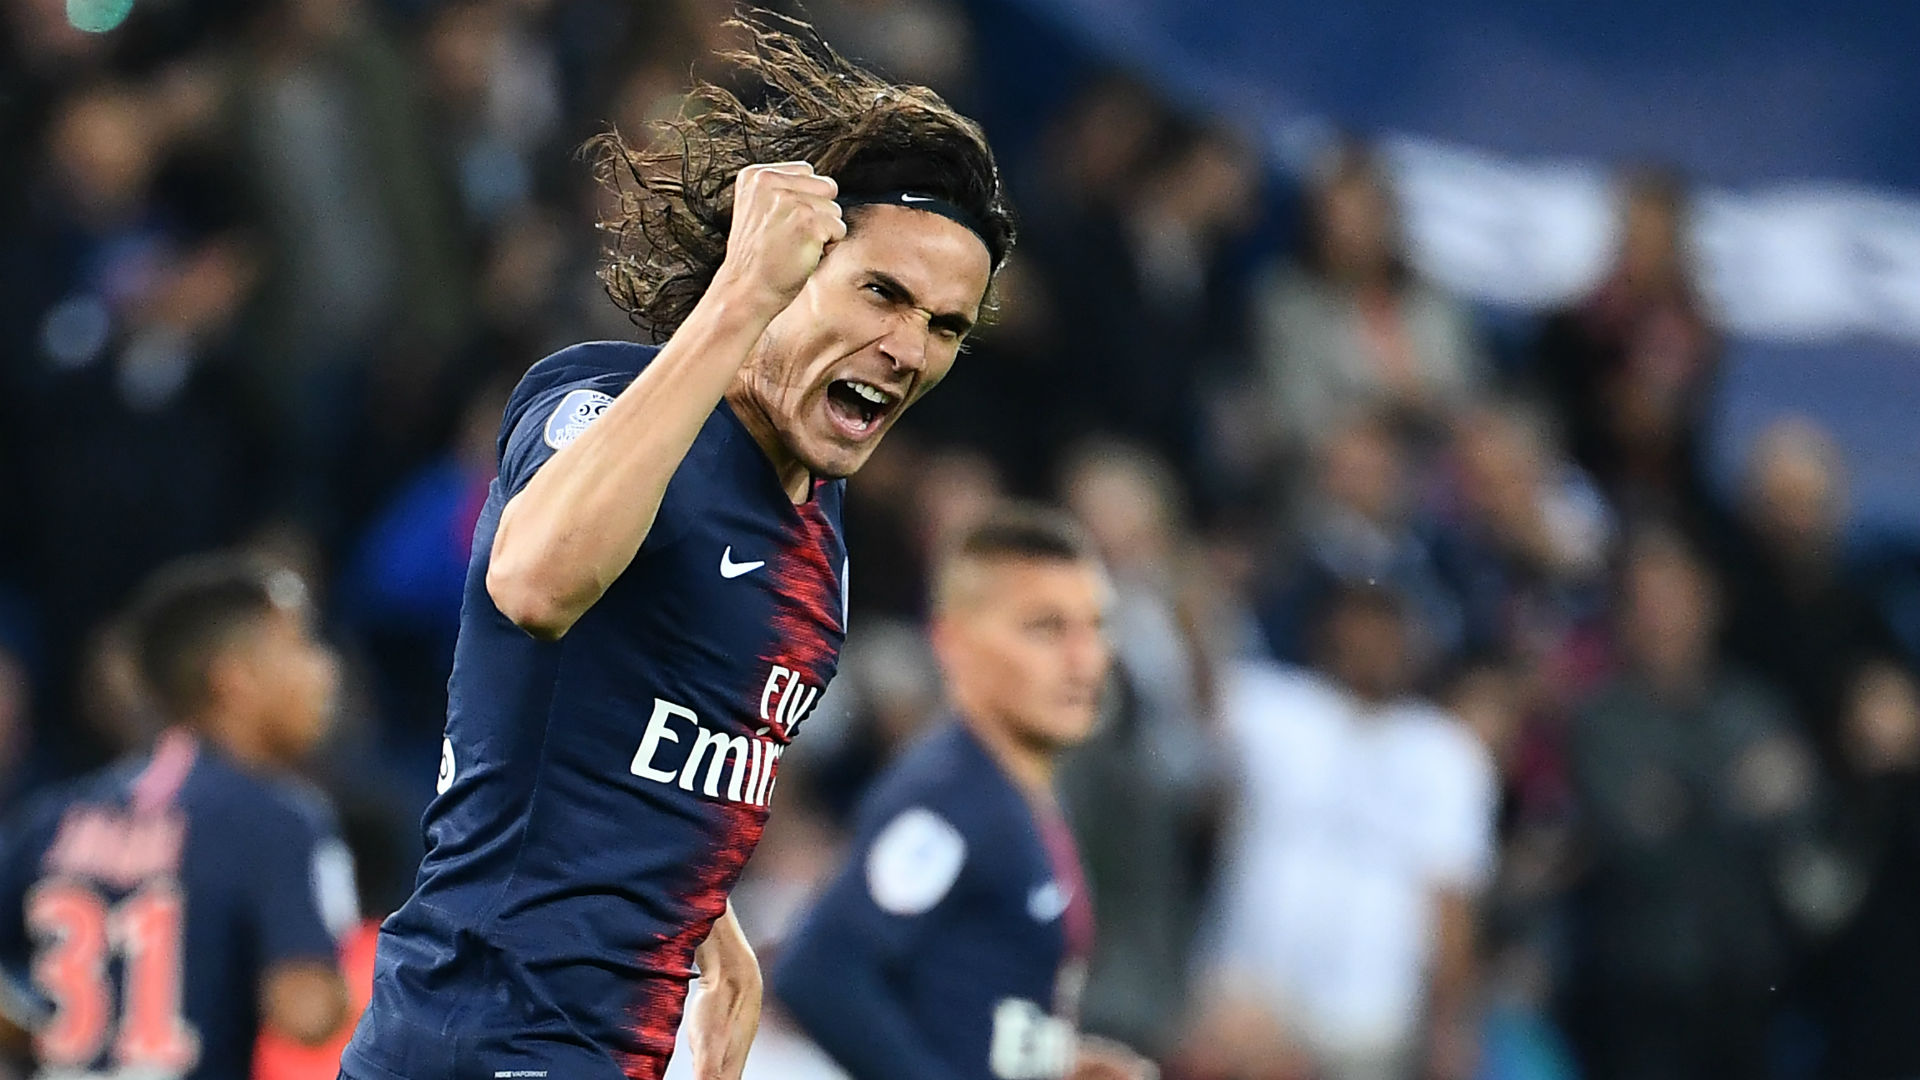 Edinson Cavani PSG Reims Ligue 1 26092018